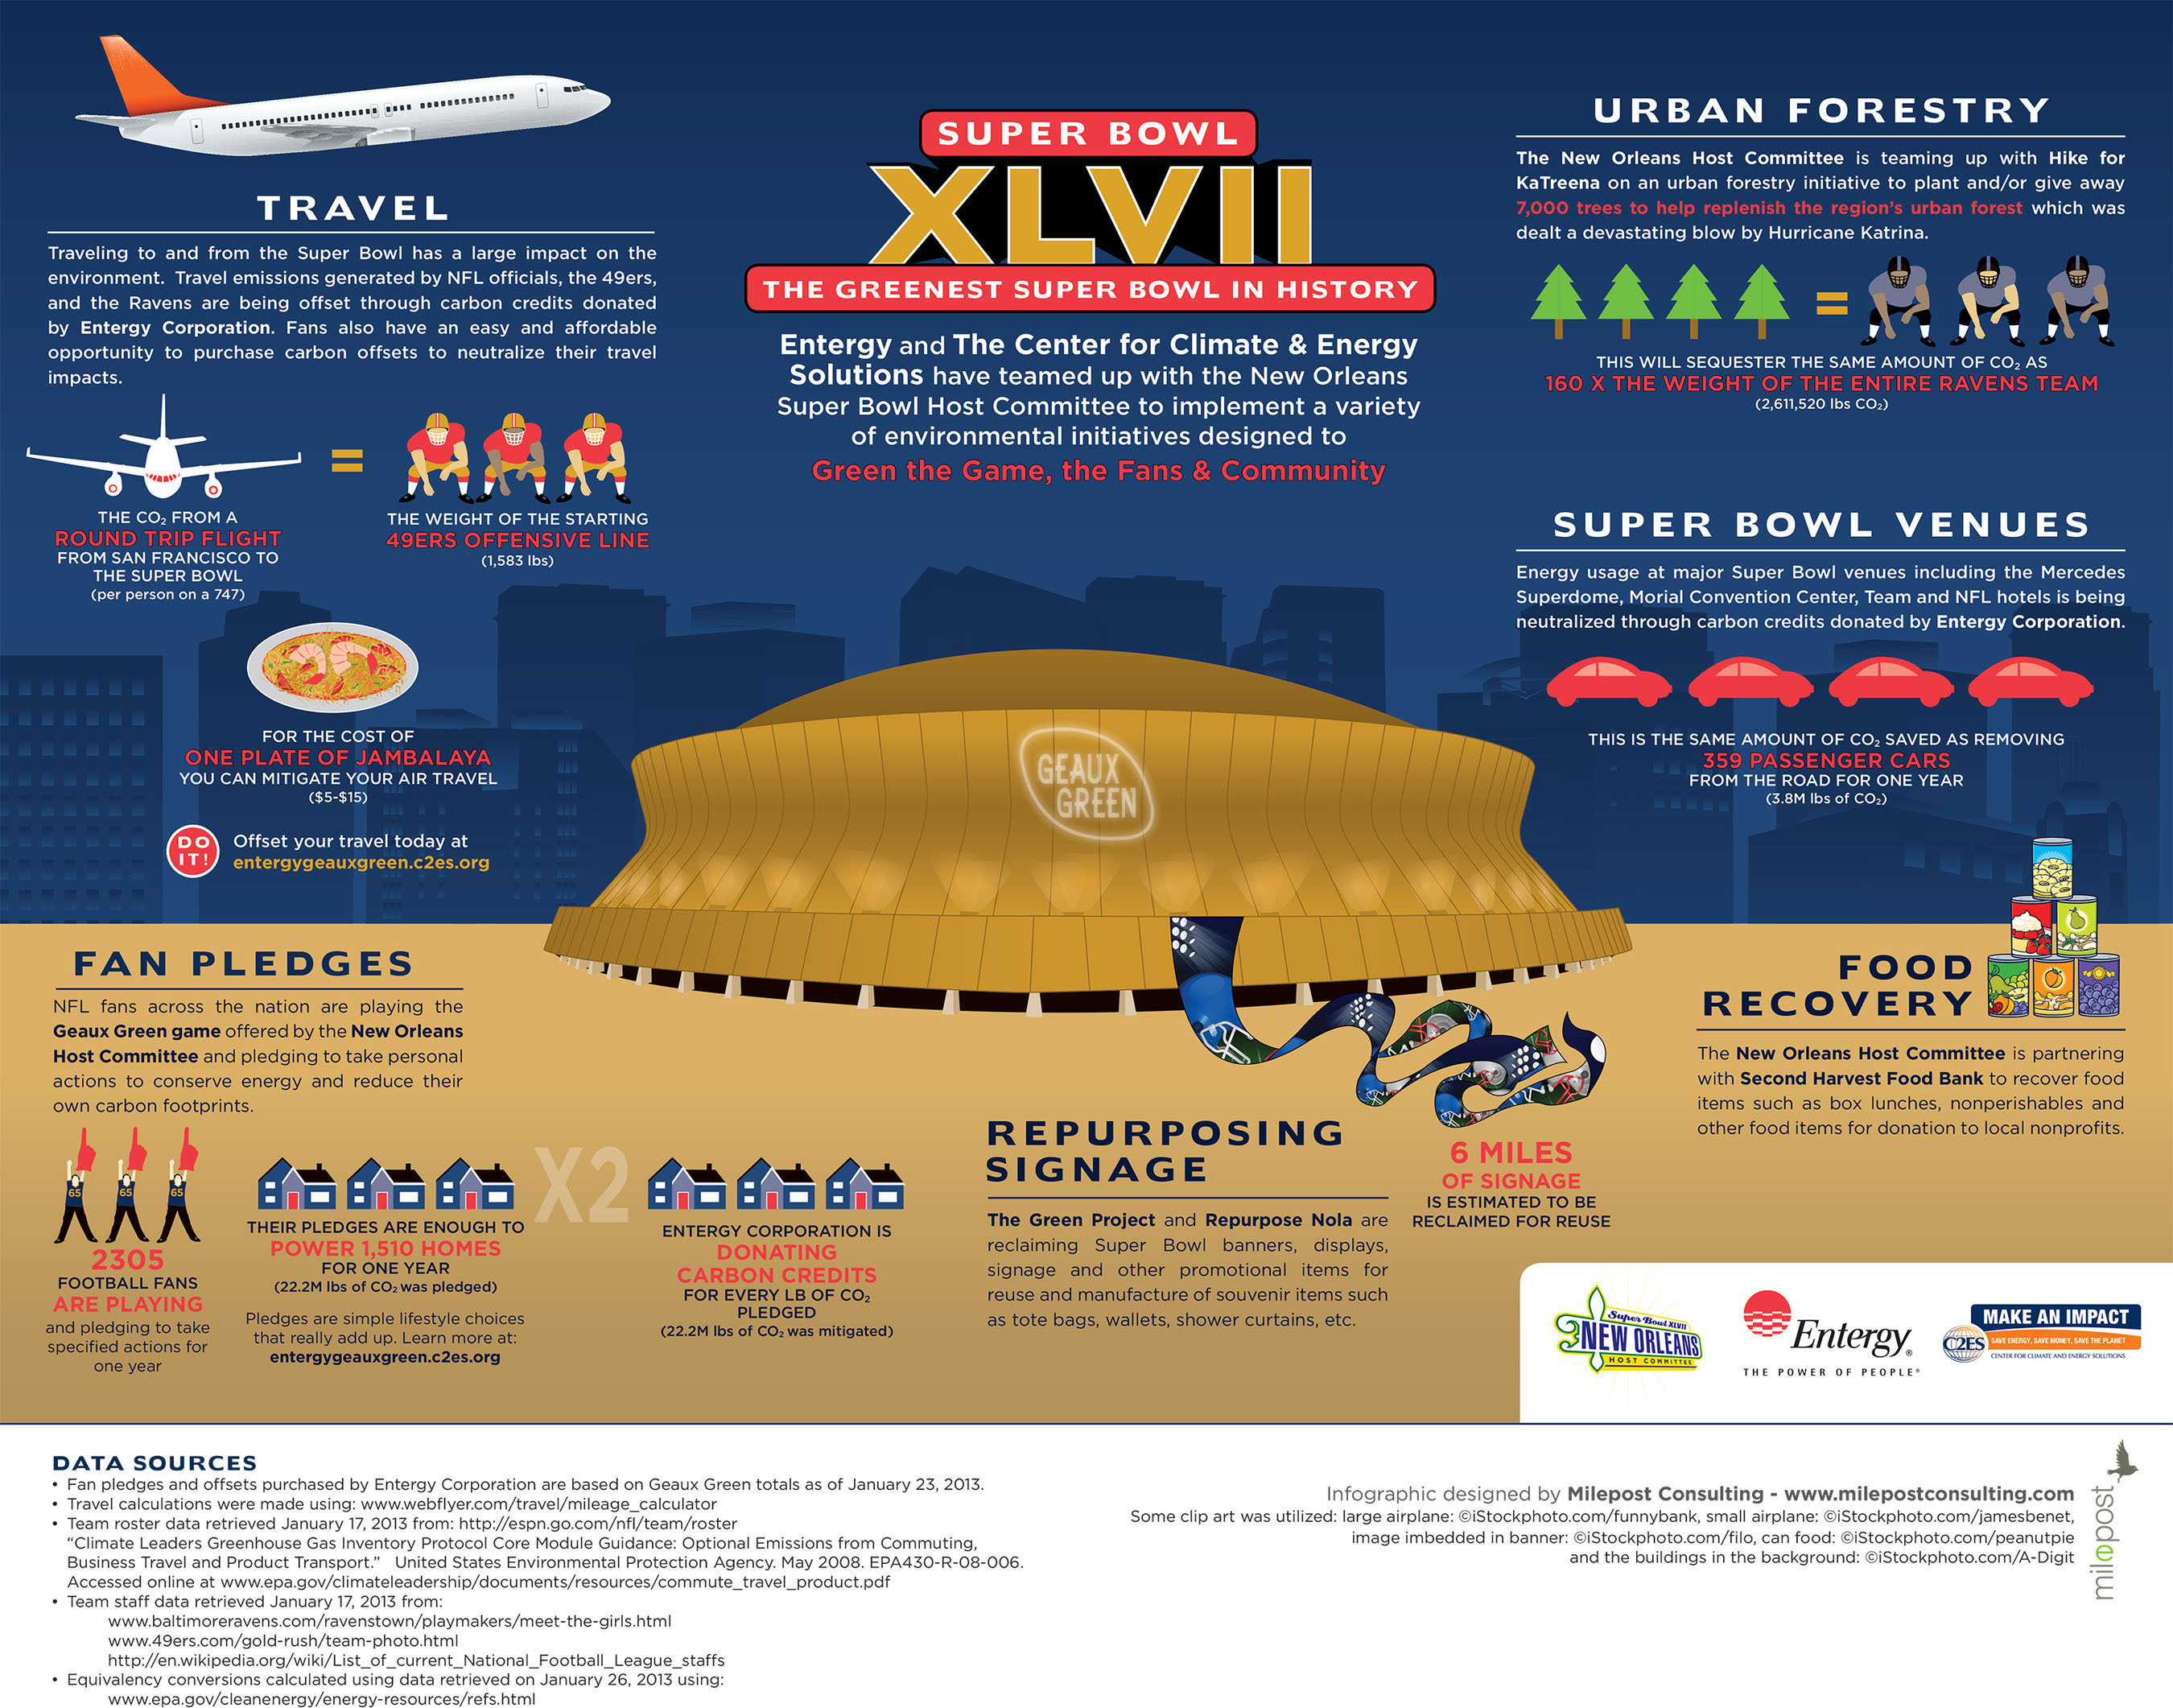 It was the greenest Super Bowl in history! The New Orleans Super Bowl Host Environmental Committee's ...